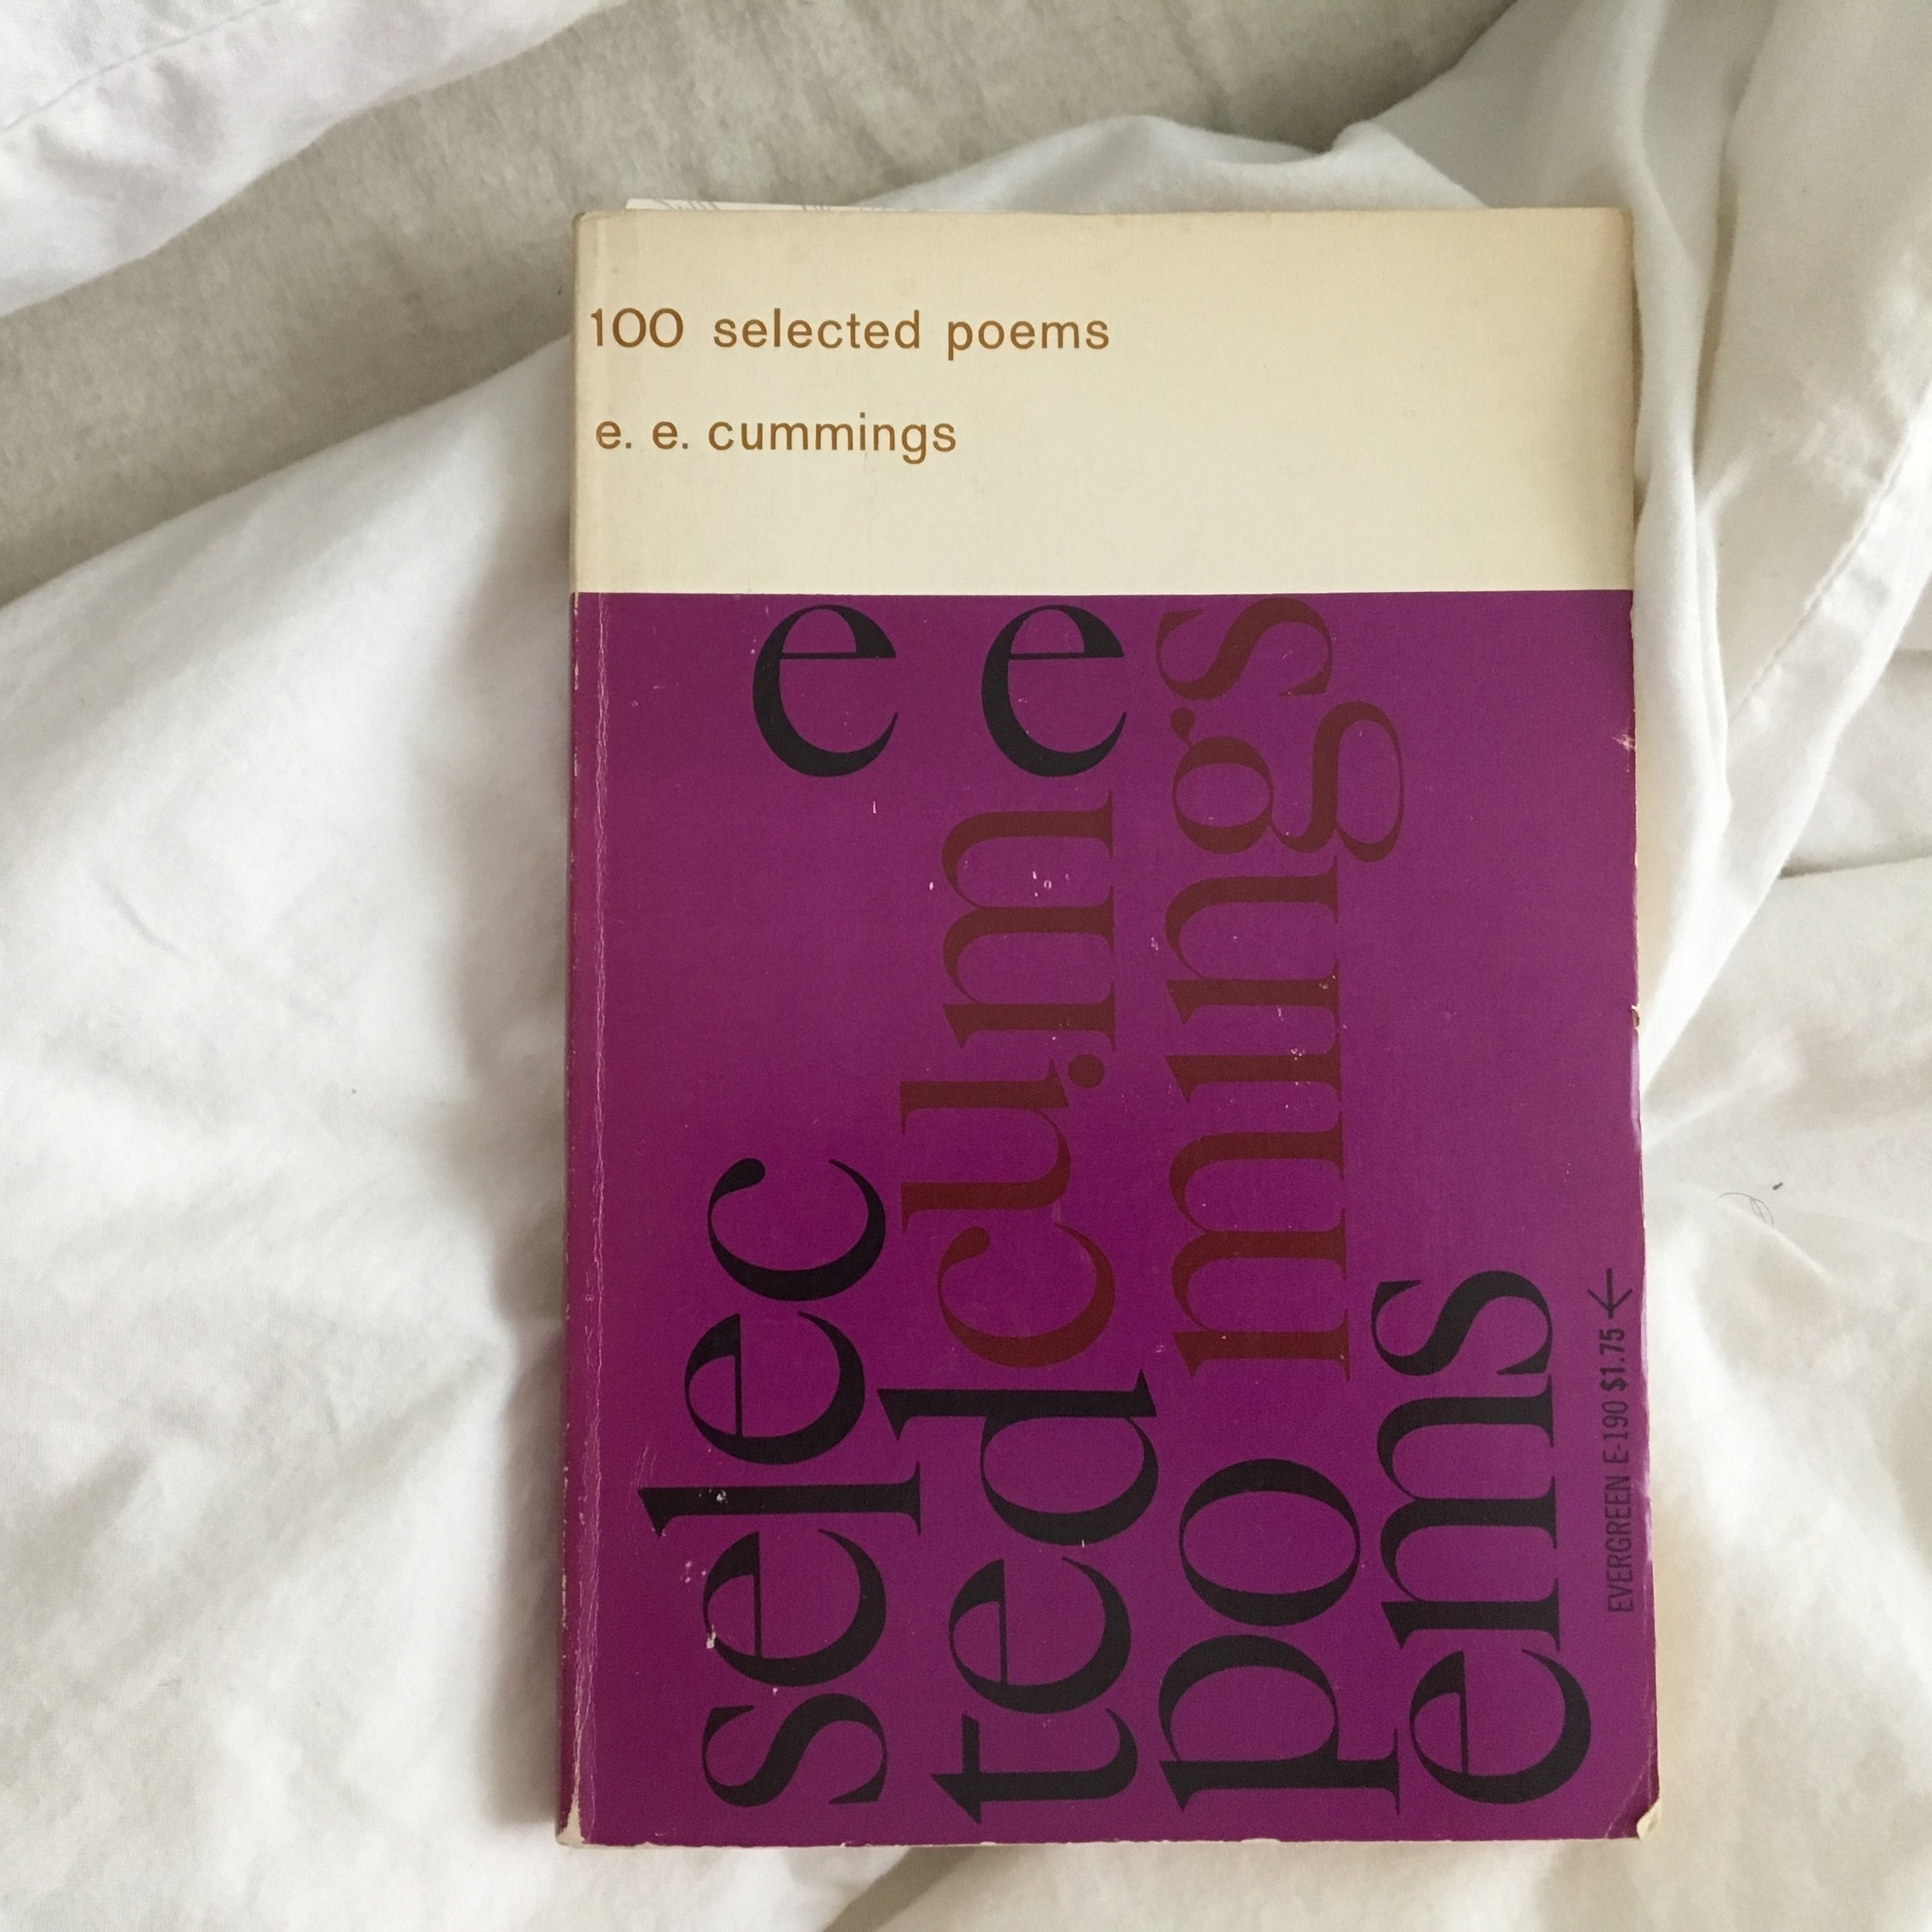 100 Selected Poems, E.E.Cummings - Cumming's fun, lyrical, and dynamic prose never disapoints.